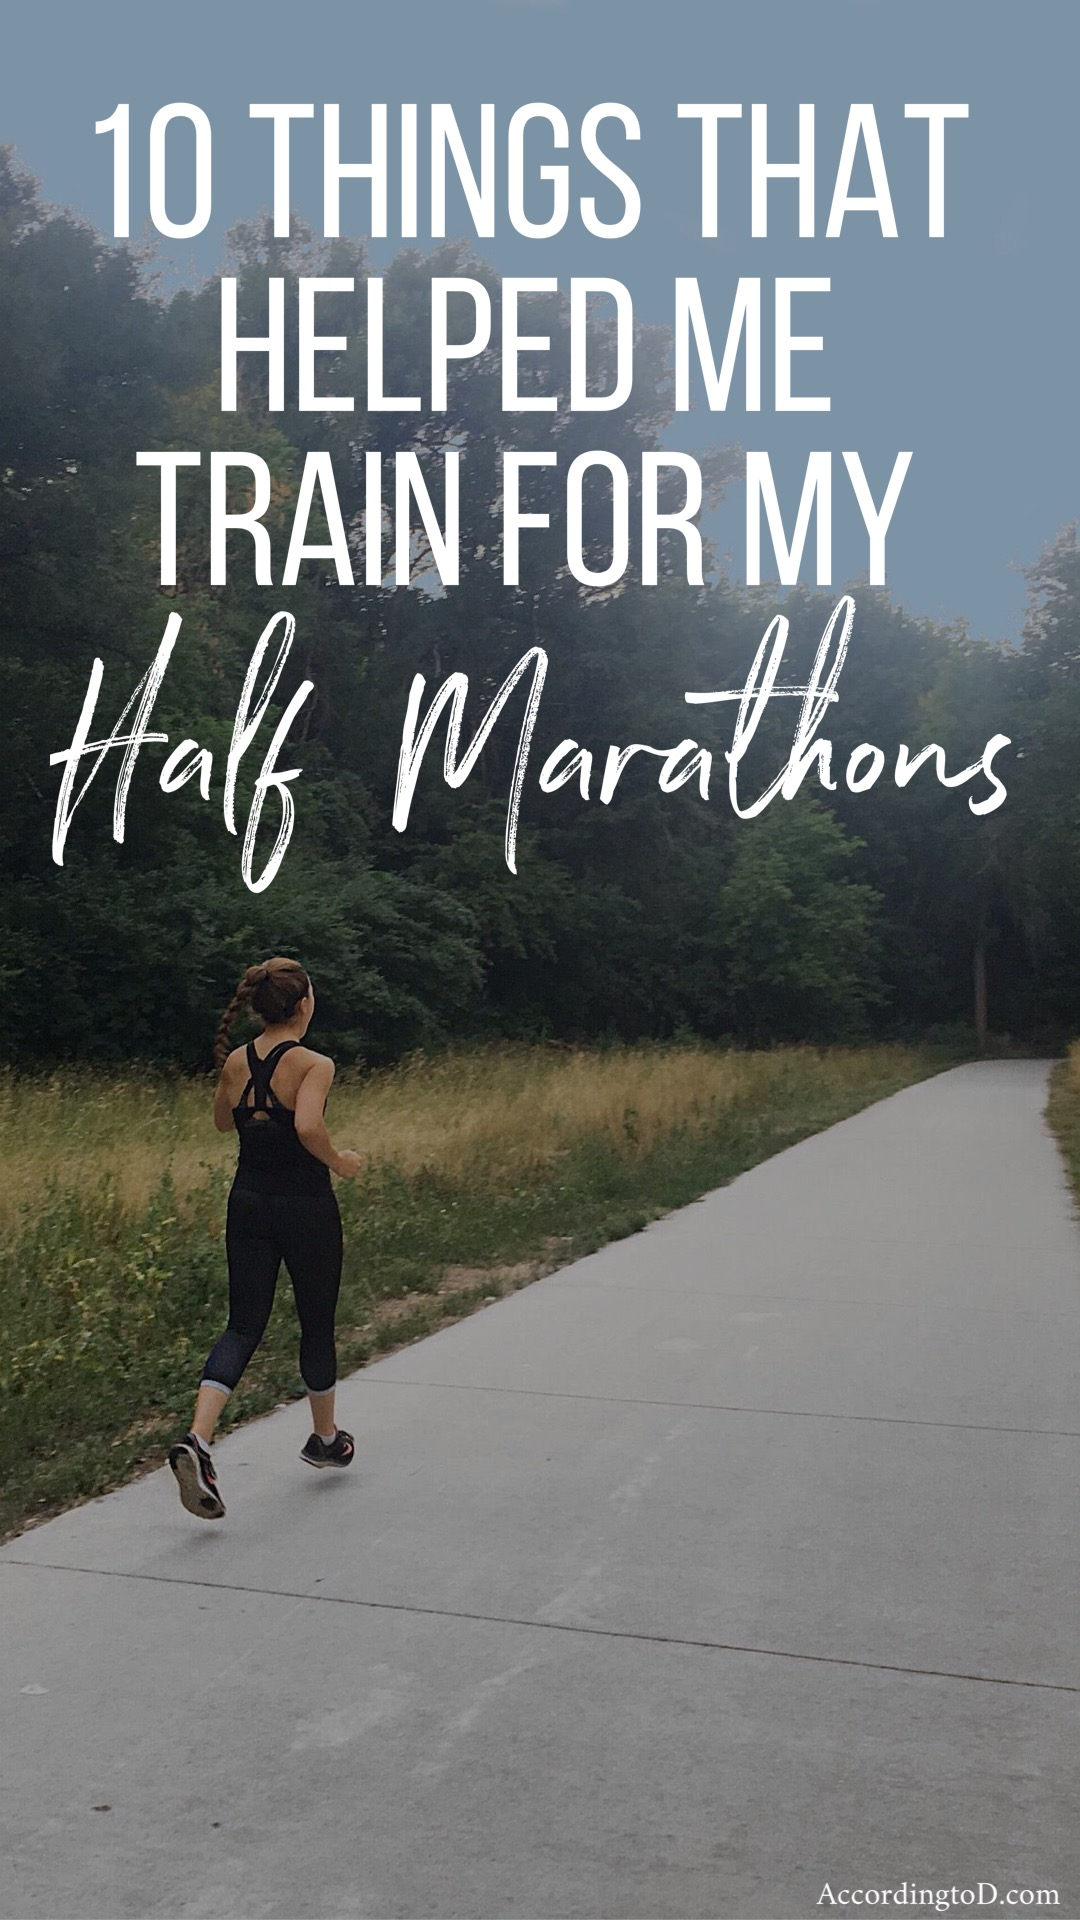 10 things that helped me train for my half marathon